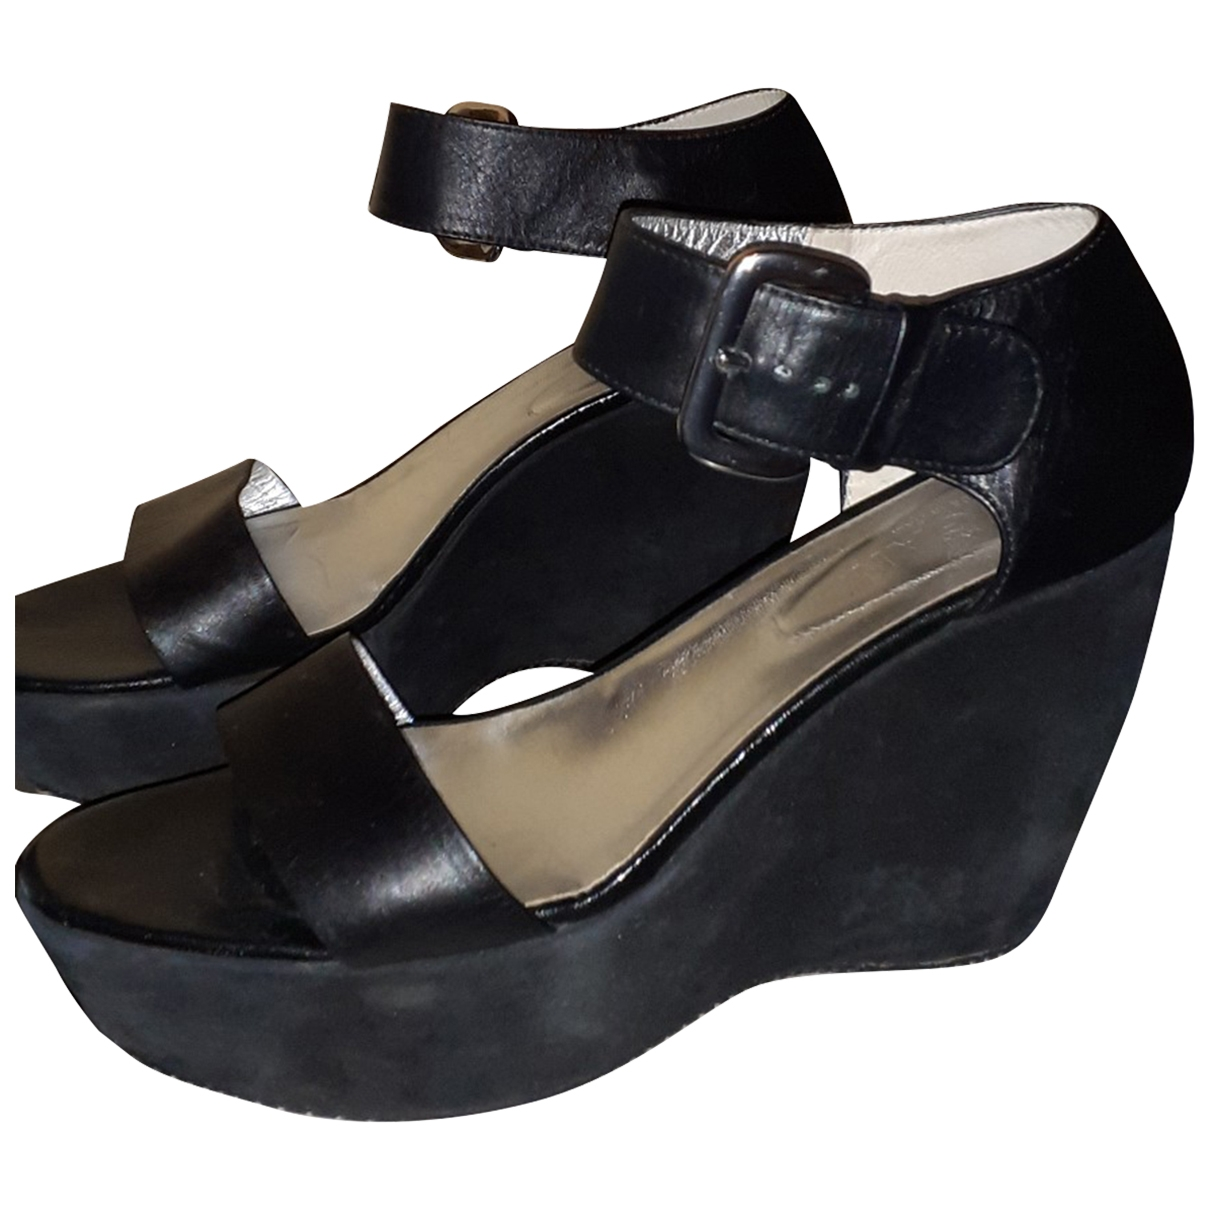 Hogan \N Black Leather Sandals for Women 39 EU